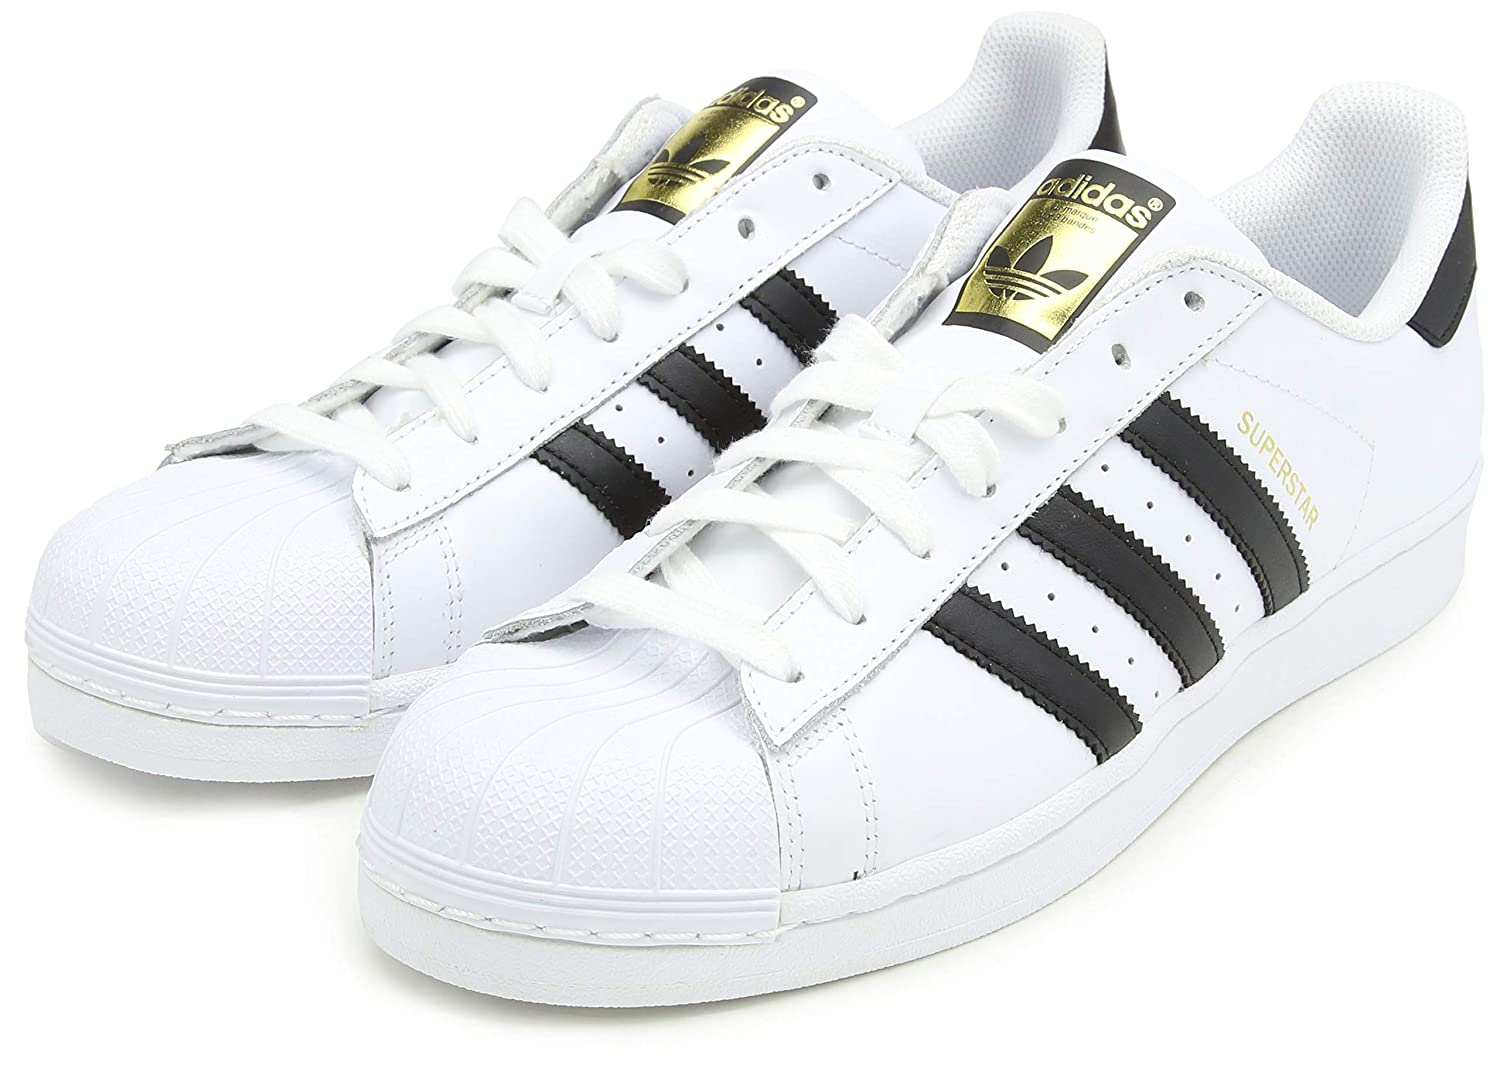 adidas superstar latest